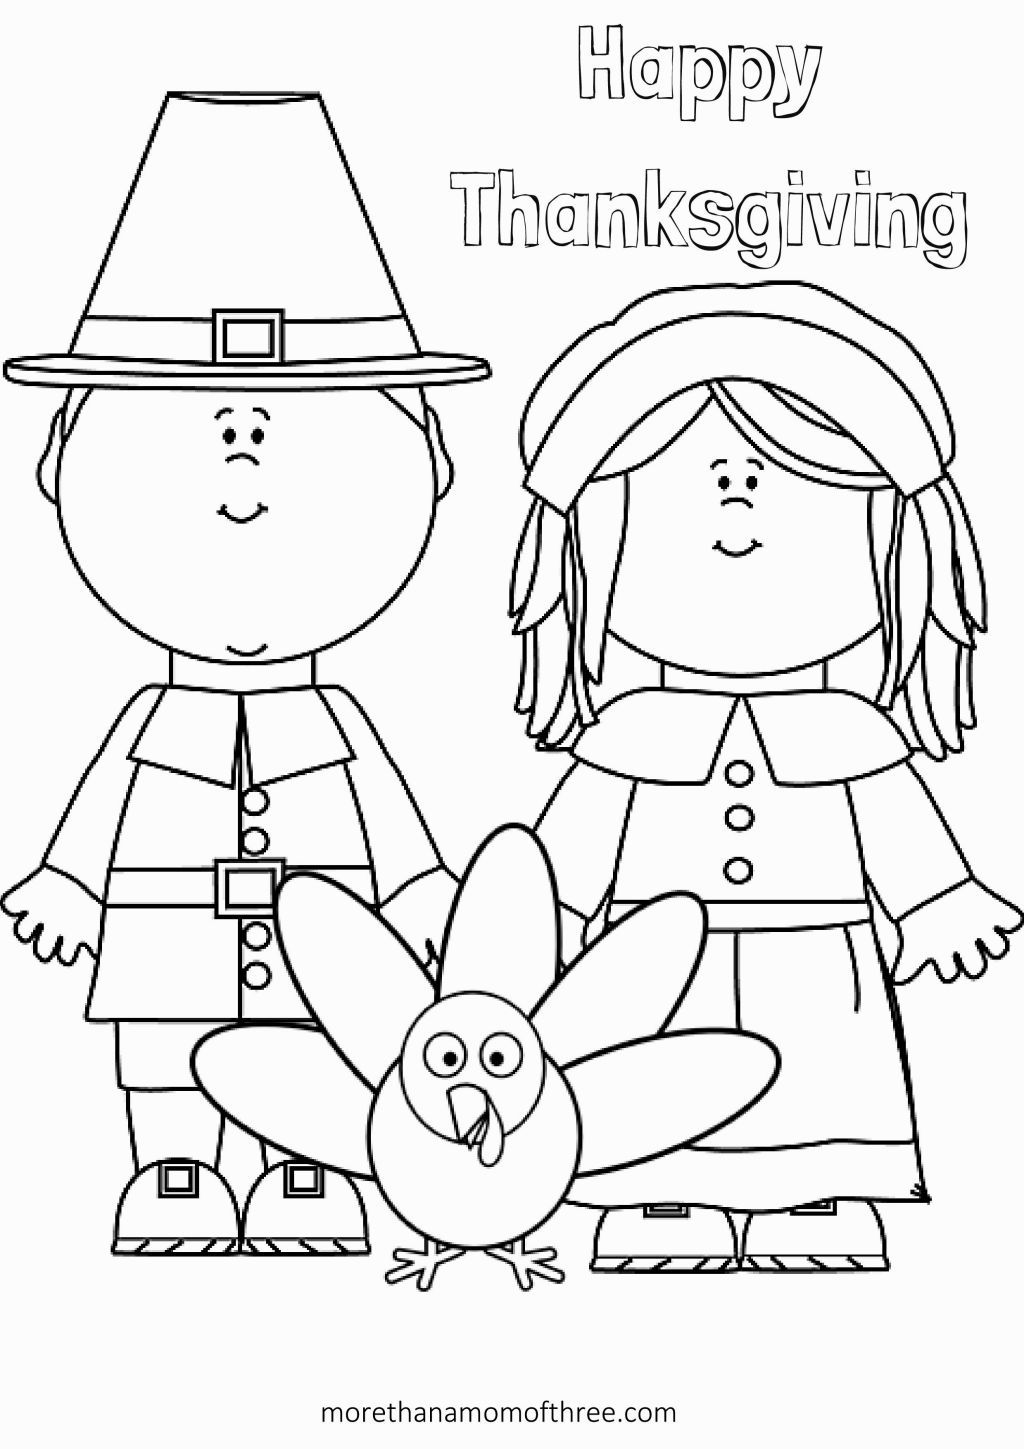 Thanksgiving preschool coloring pages az coloring pages for Preschool coloring pages